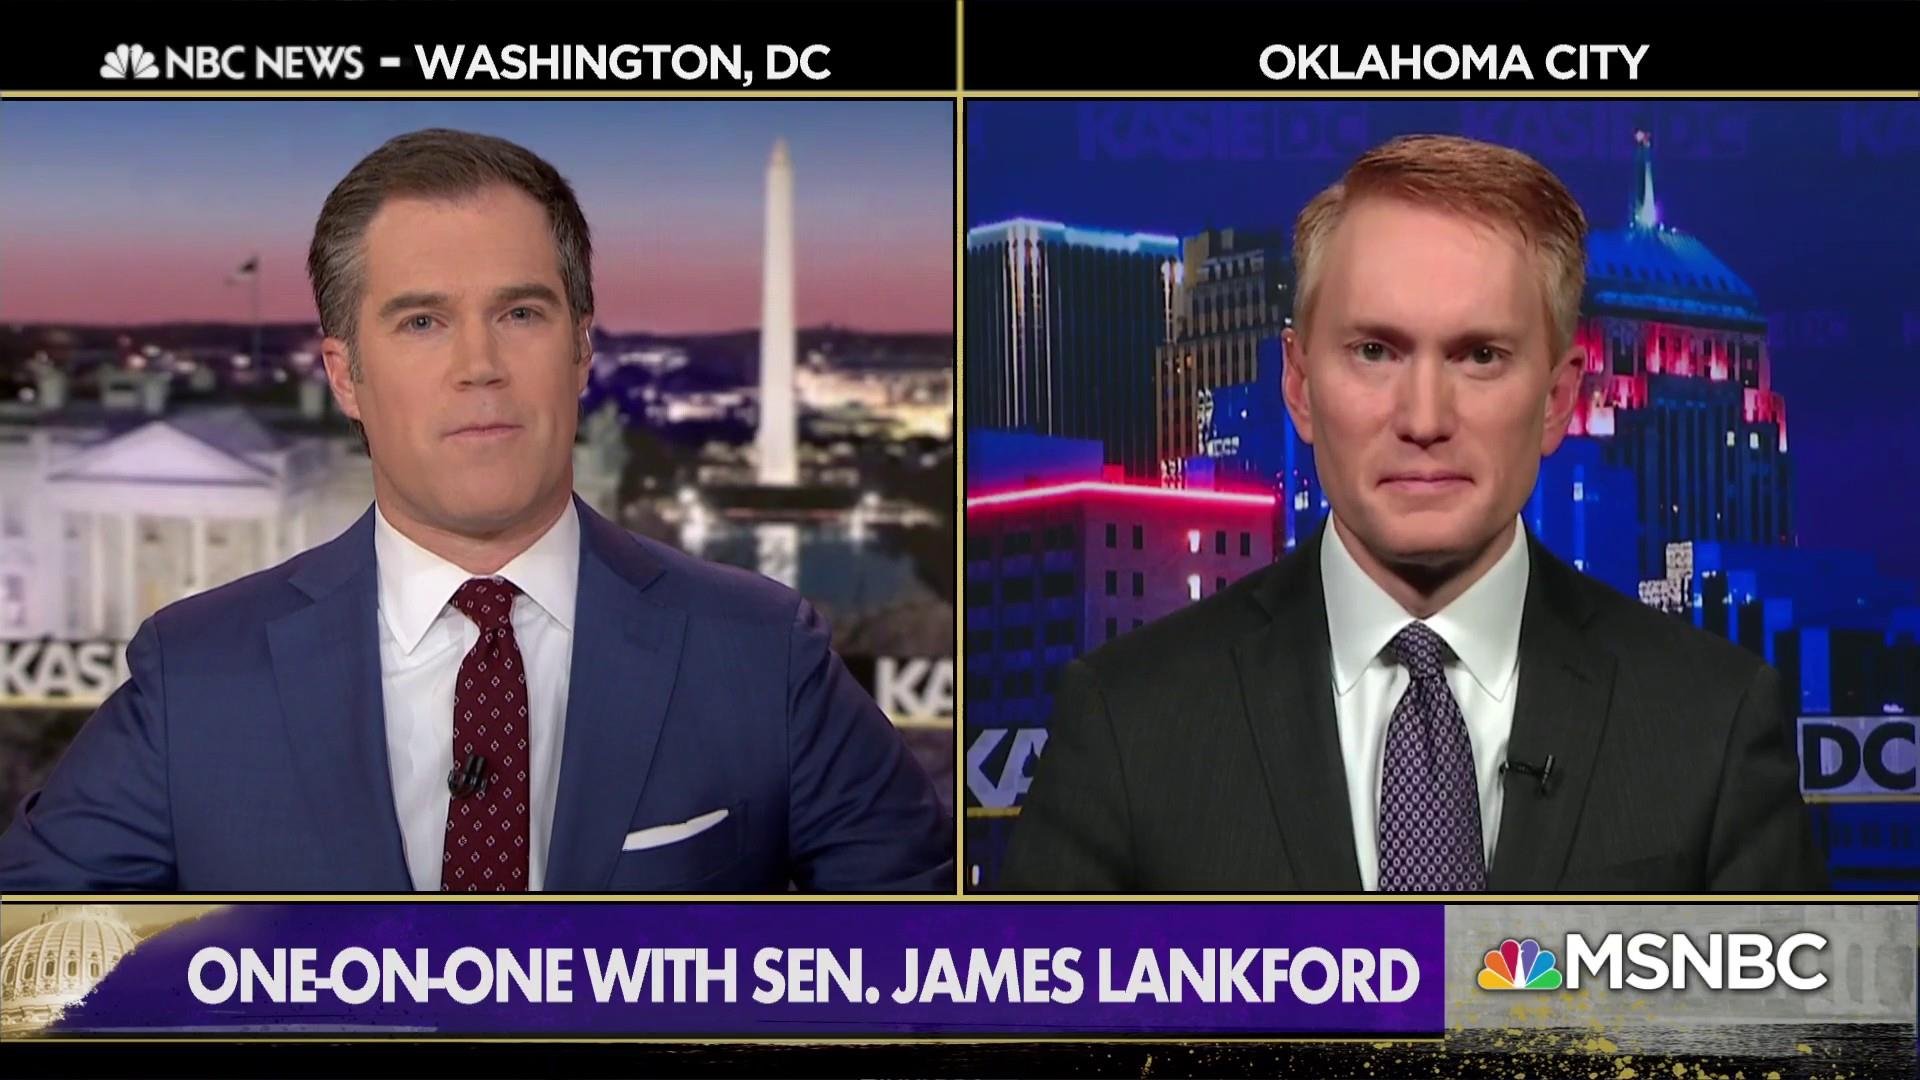 Sen. Lankford: We 'should have some resolution' for DACA recipients